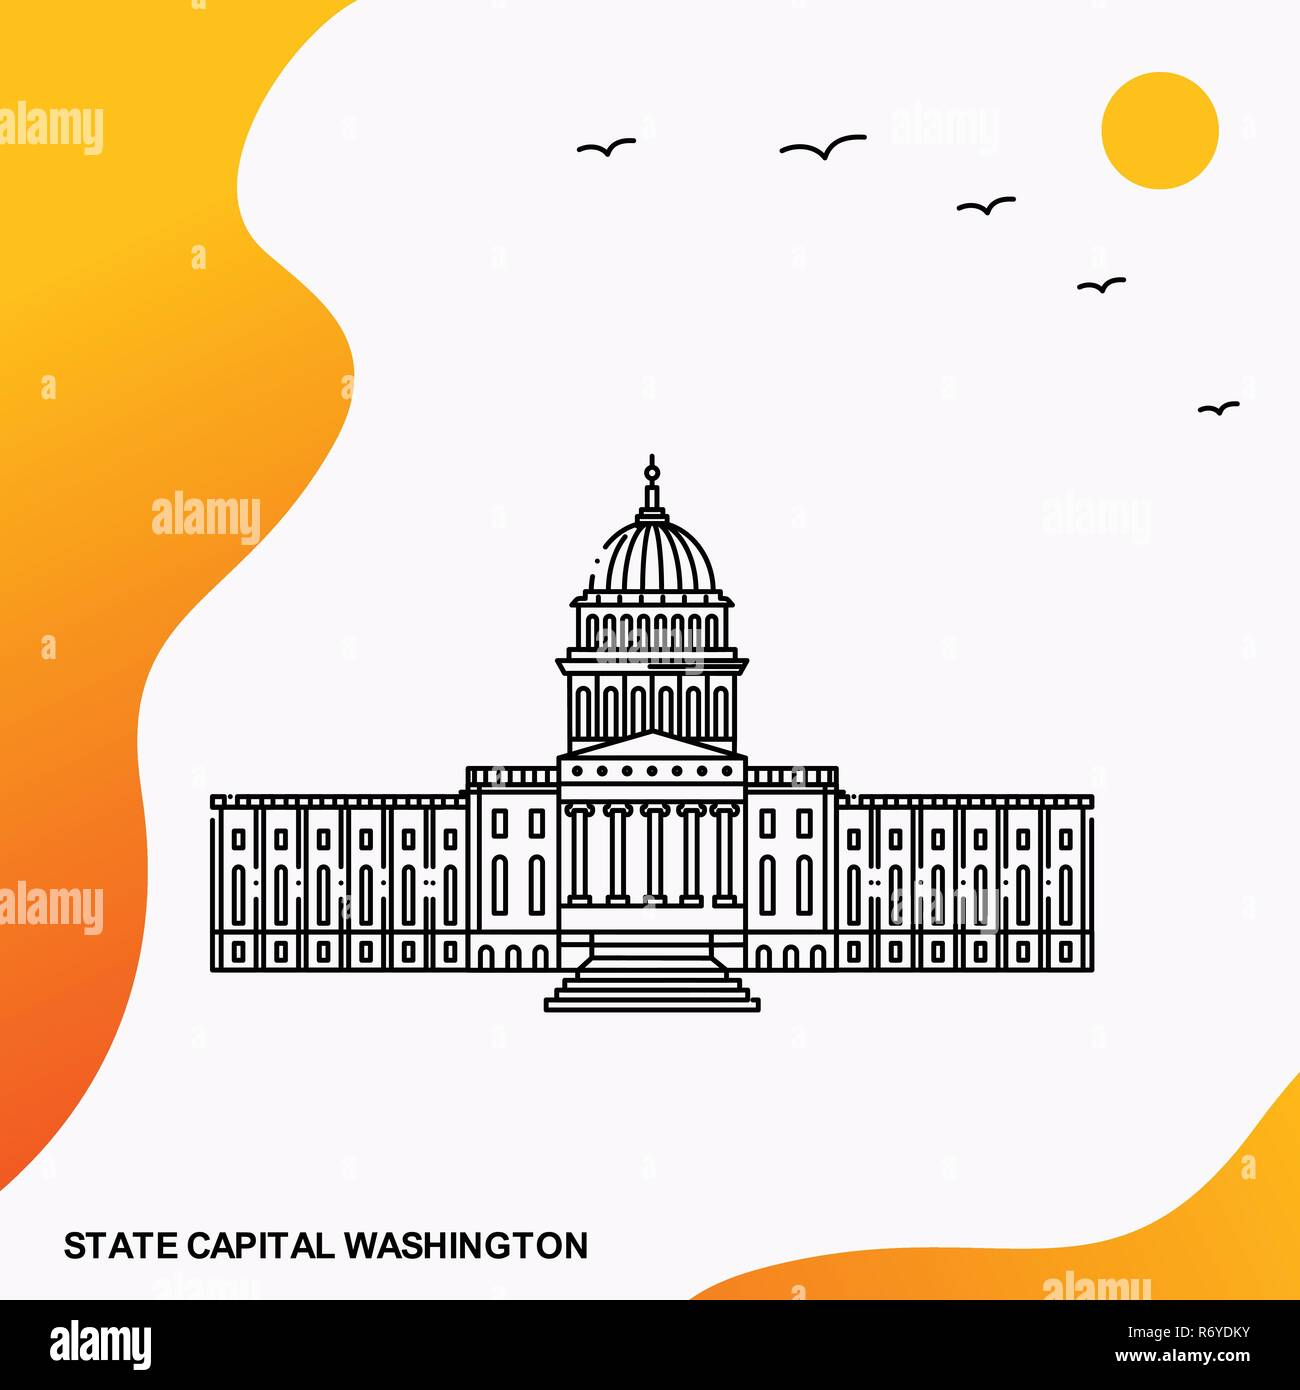 Travel STATE CAPITAL WASHINGTON Poster Template - Stock Vector